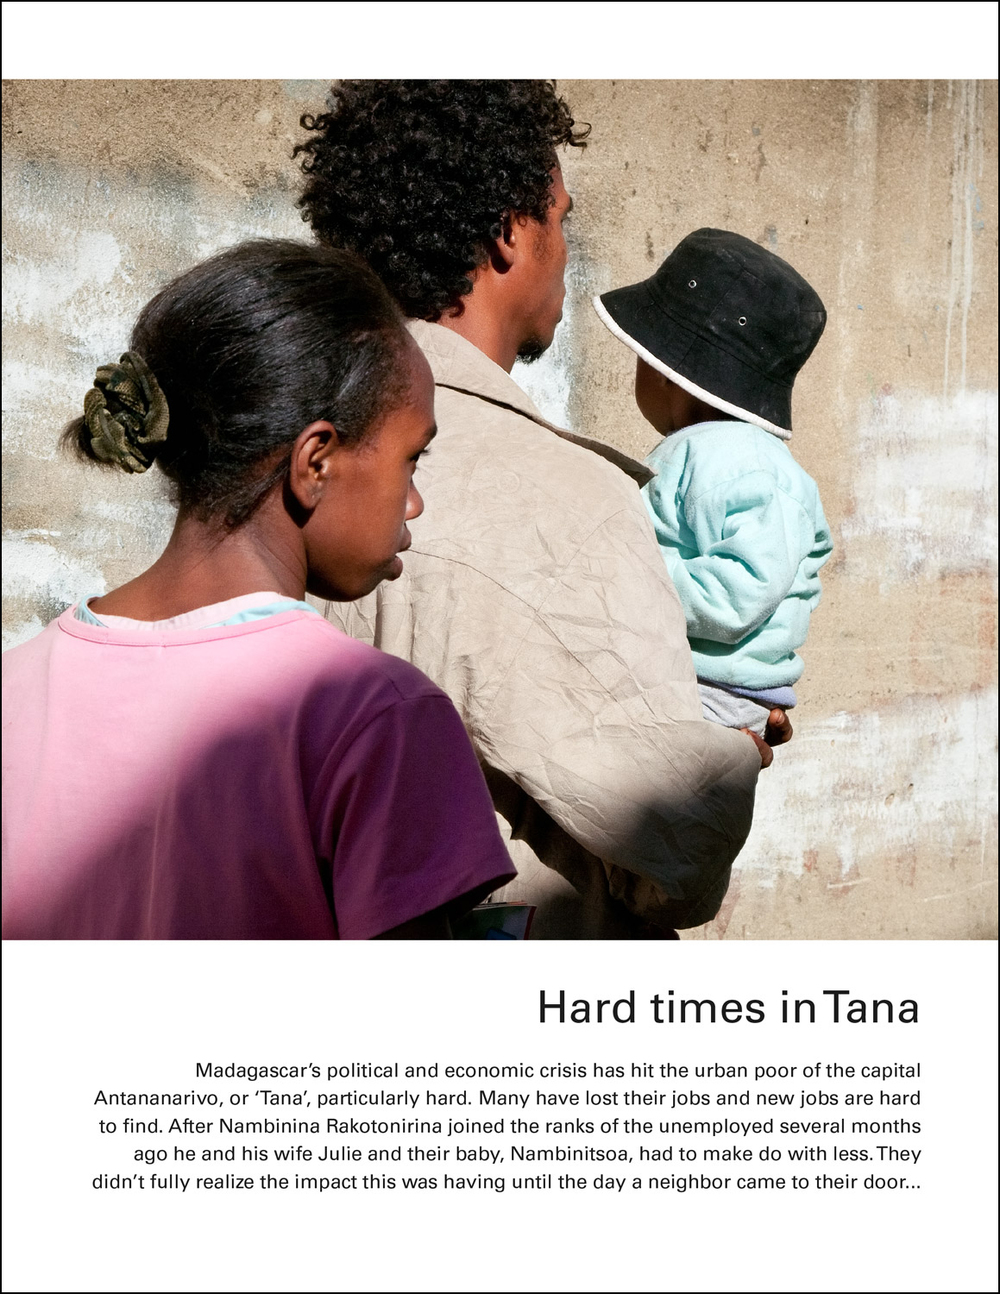 UNICEF Madagascar: Hard Times in Tana